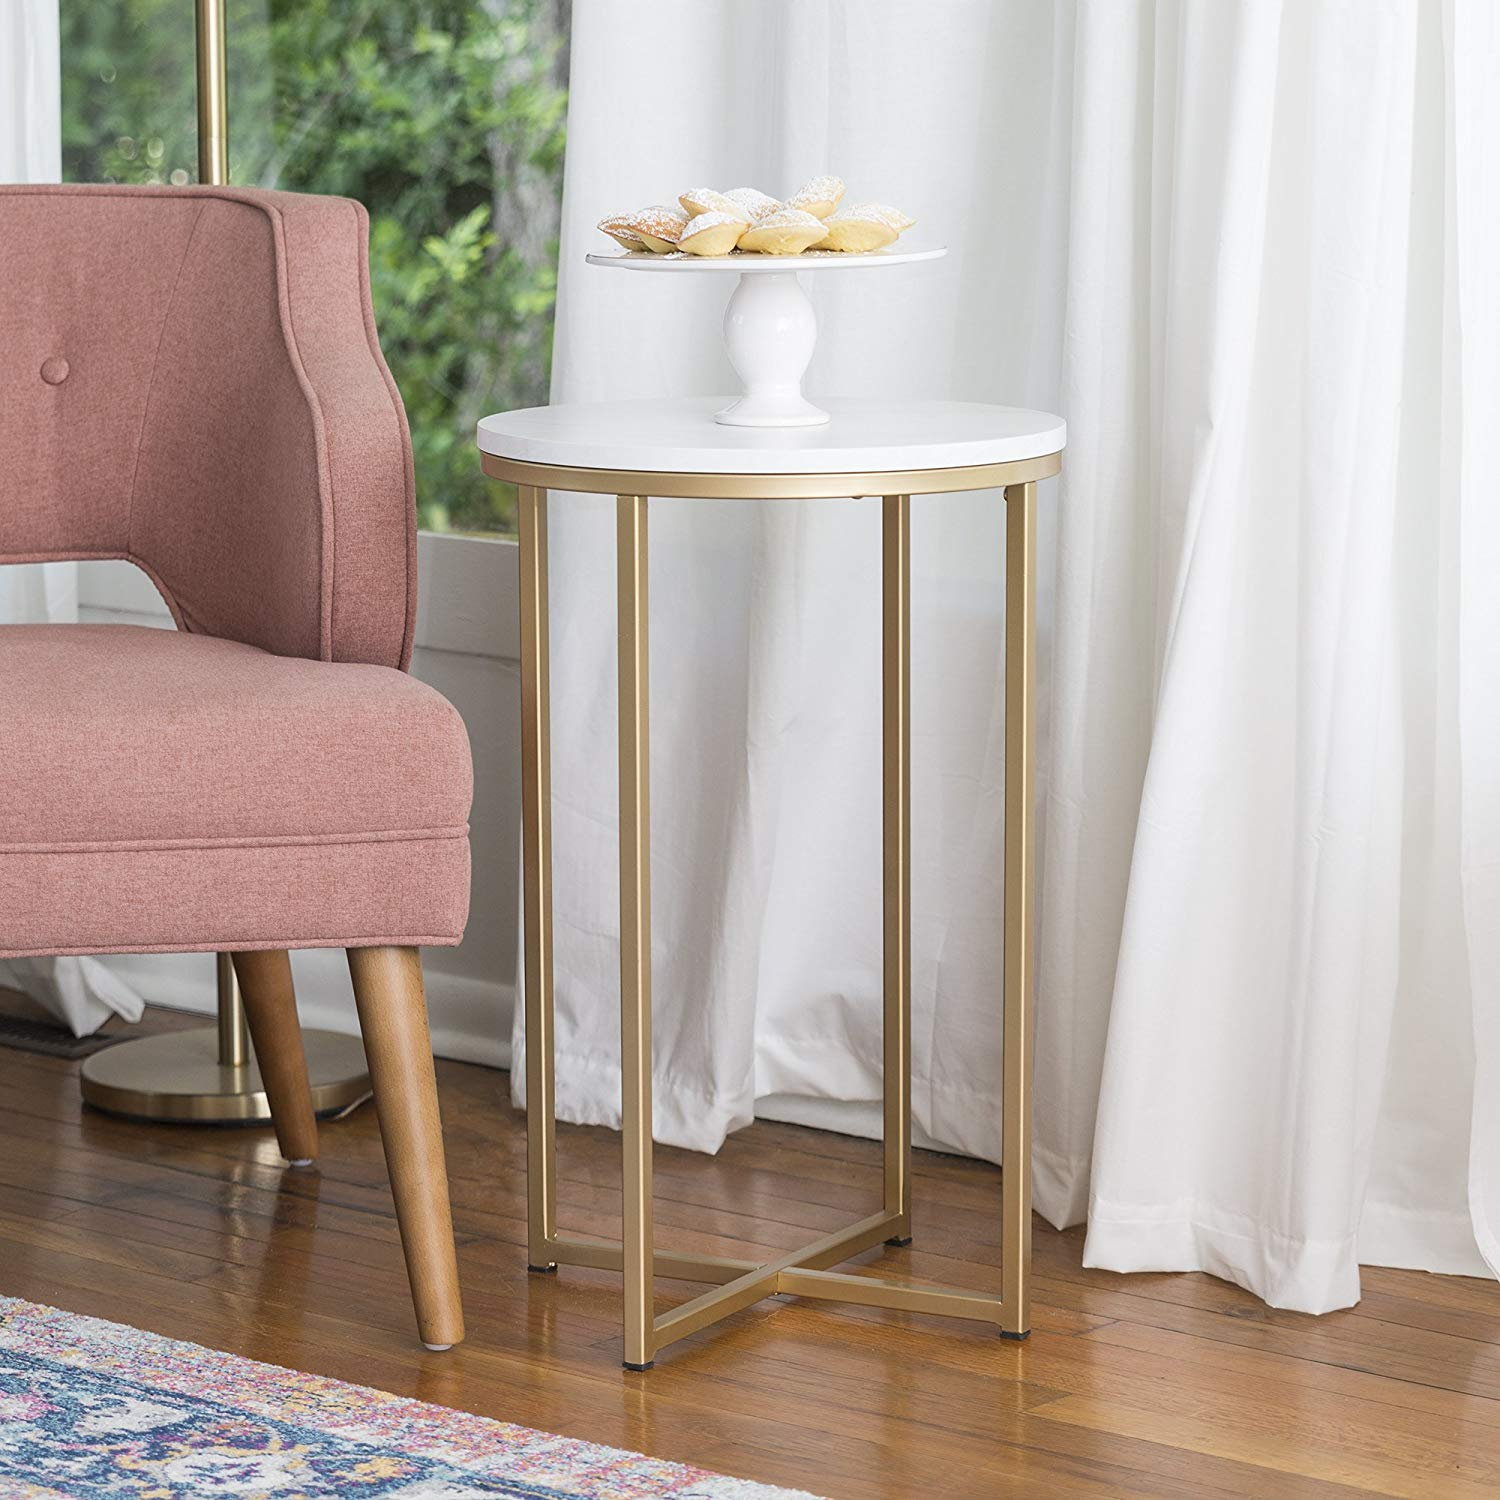 furniture round side table faux marble gold accent decor kitchen dining leick corner computer desk tama drum throne hairpin legs for less pottery barn black room plant stand small